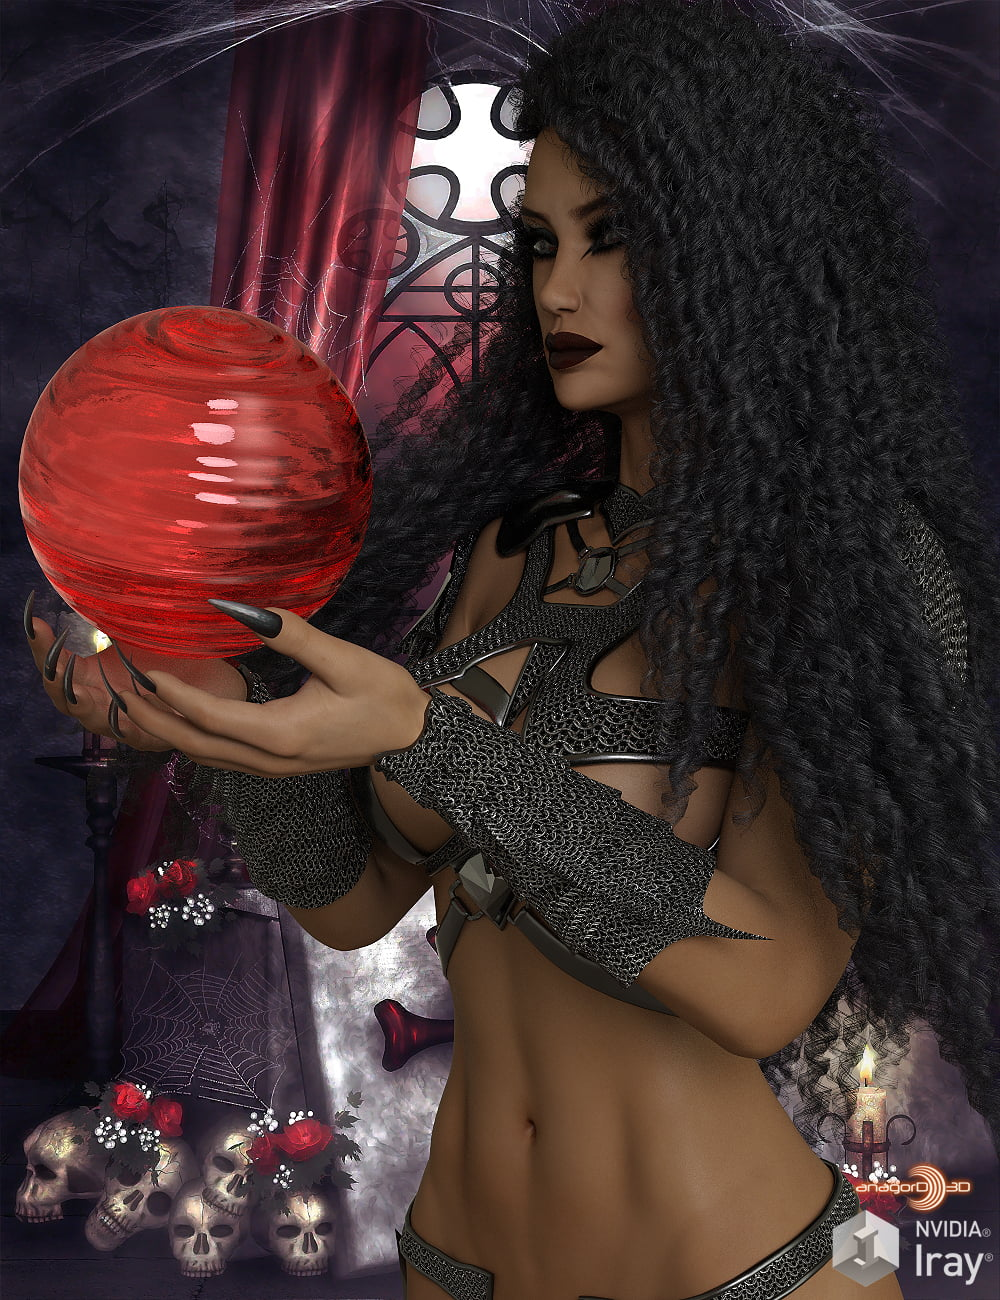 DAZ | Poser | Carrara Archives ⋆ Page 287 of 4064 ⋆ 3d